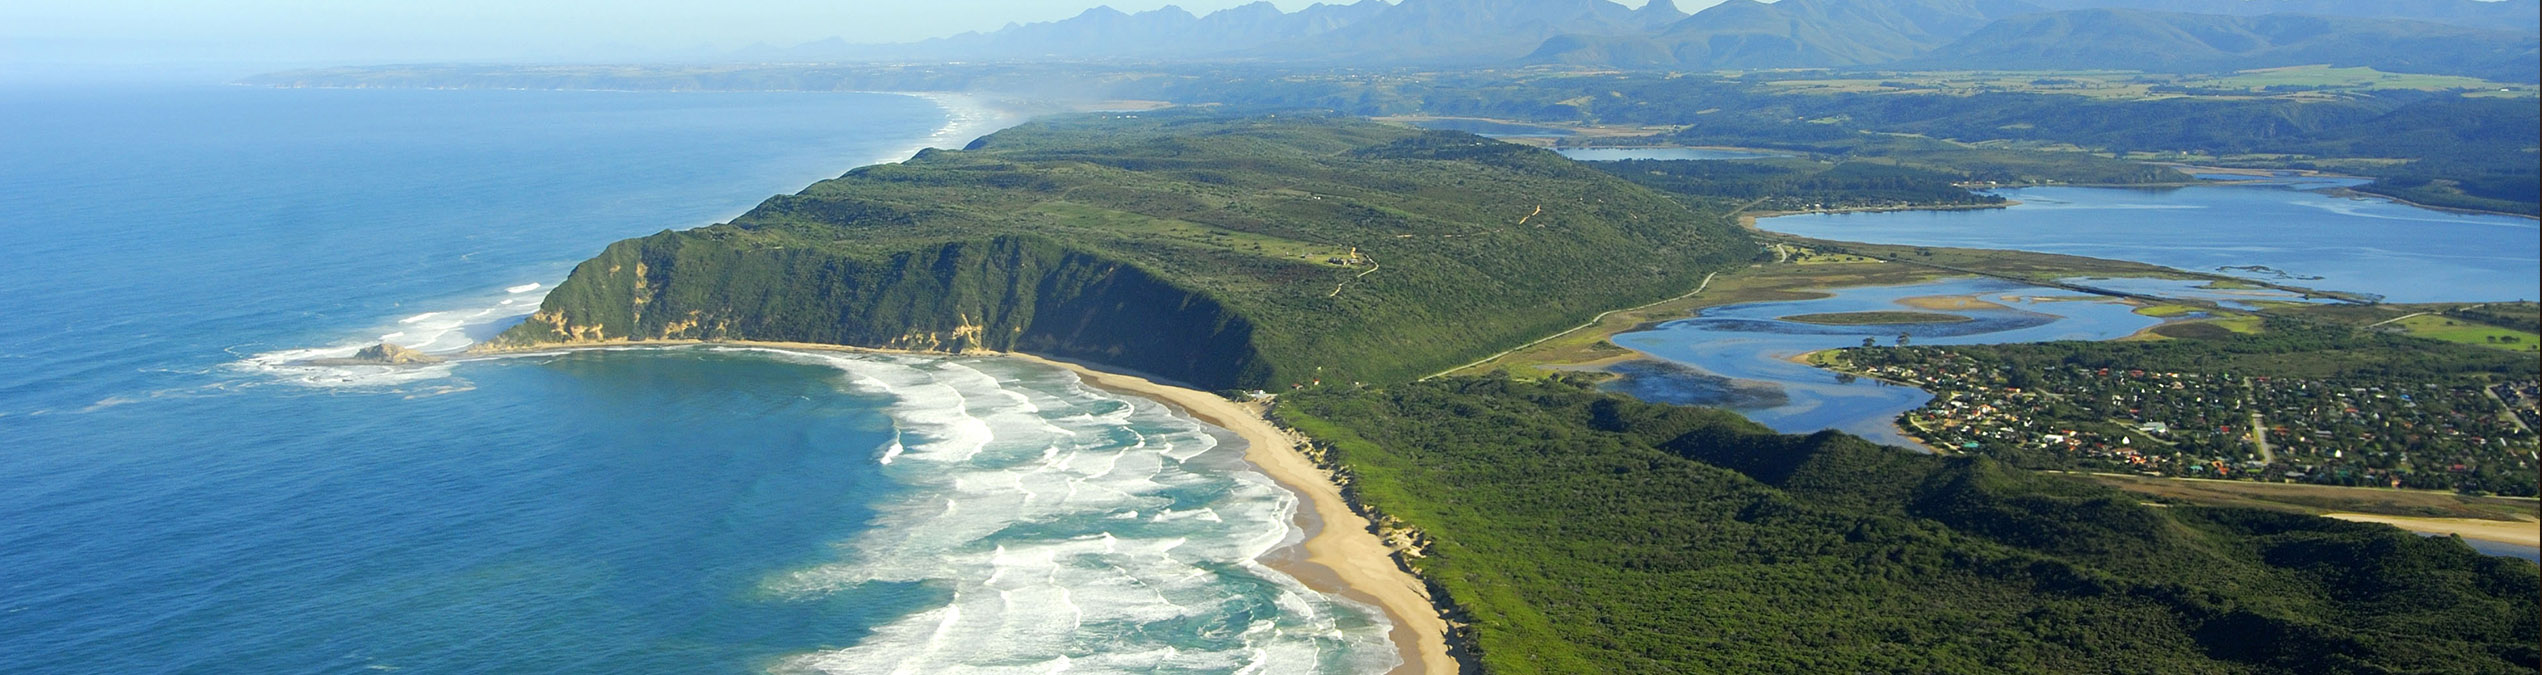 Safari Club - South_Africa_Sedgefield_Garden_Route_Ariel